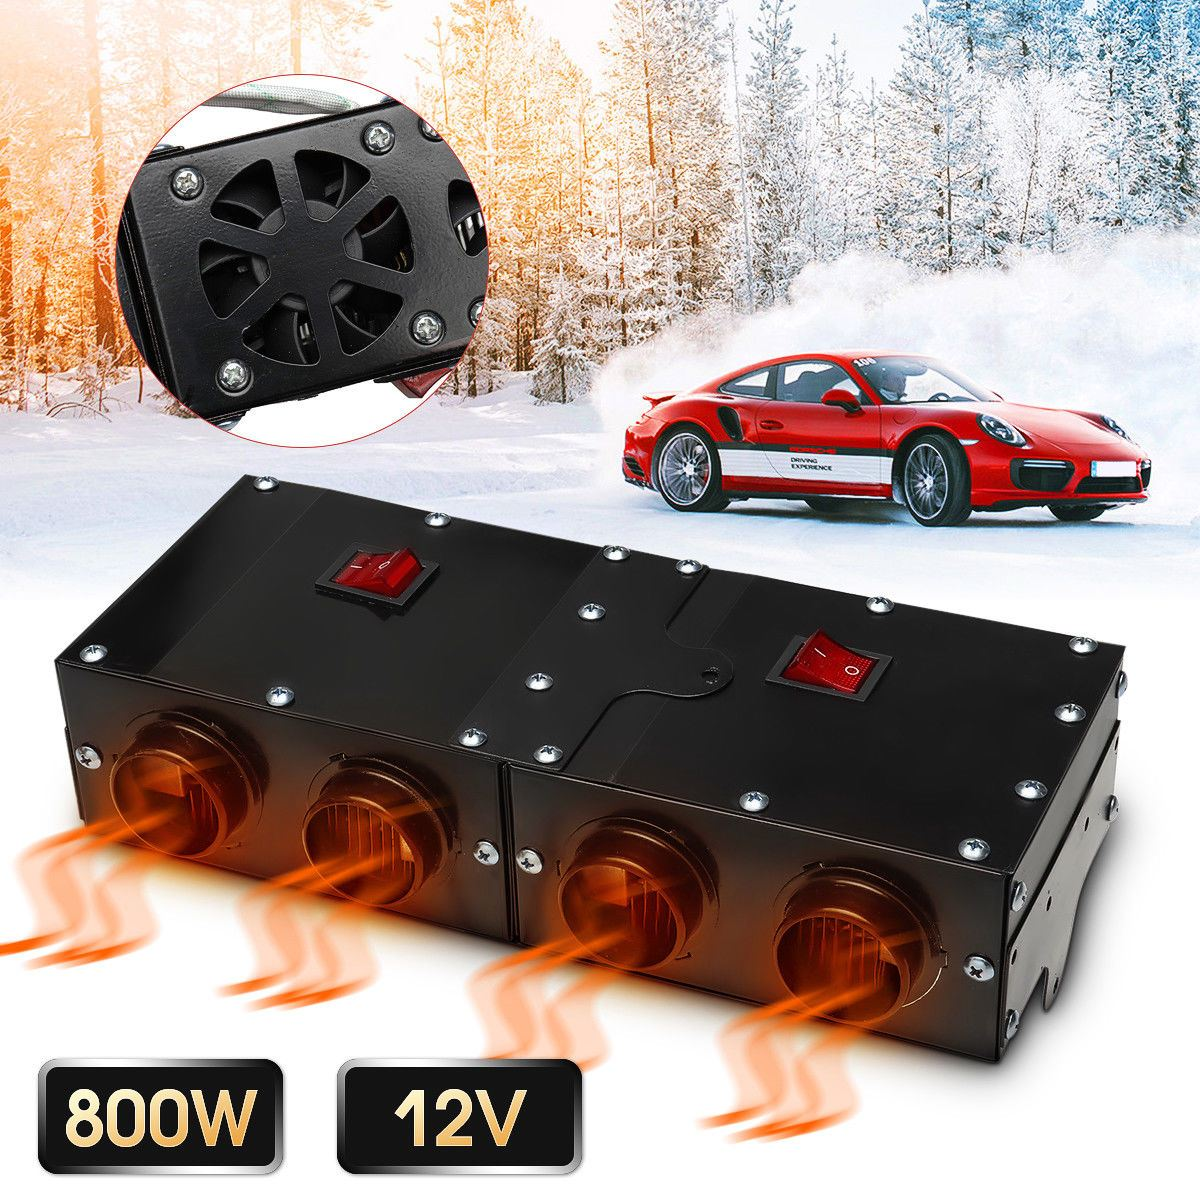 12V  800W Car Fan Heater Defroster Demister Hot Heating Warmer Windscreen for Vehicle interior Electric heater12V  800W Car Fan Heater Defroster Demister Hot Heating Warmer Windscreen for Vehicle interior Electric heater